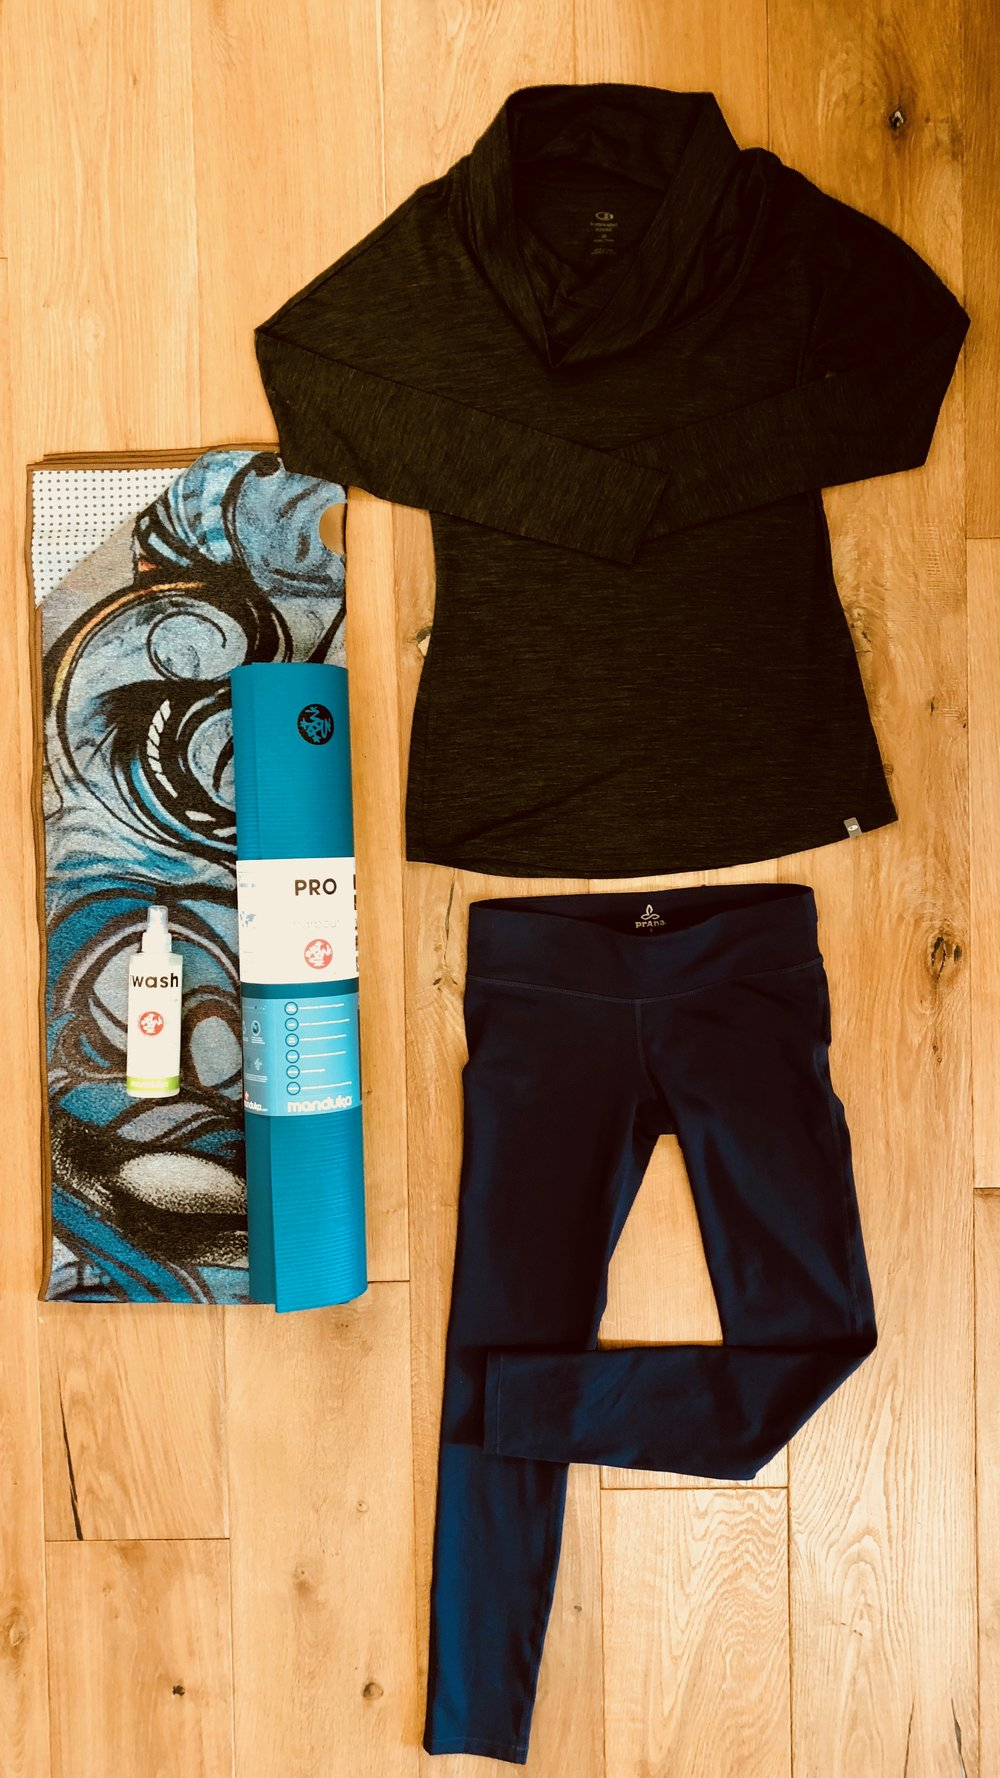 RE-TREAT  - For the yogi in your life: a Manduka mat, towel and wash. Compliment the gear with a pair of Prana leggings and Icebreaker top great for layering over a yoga tank.